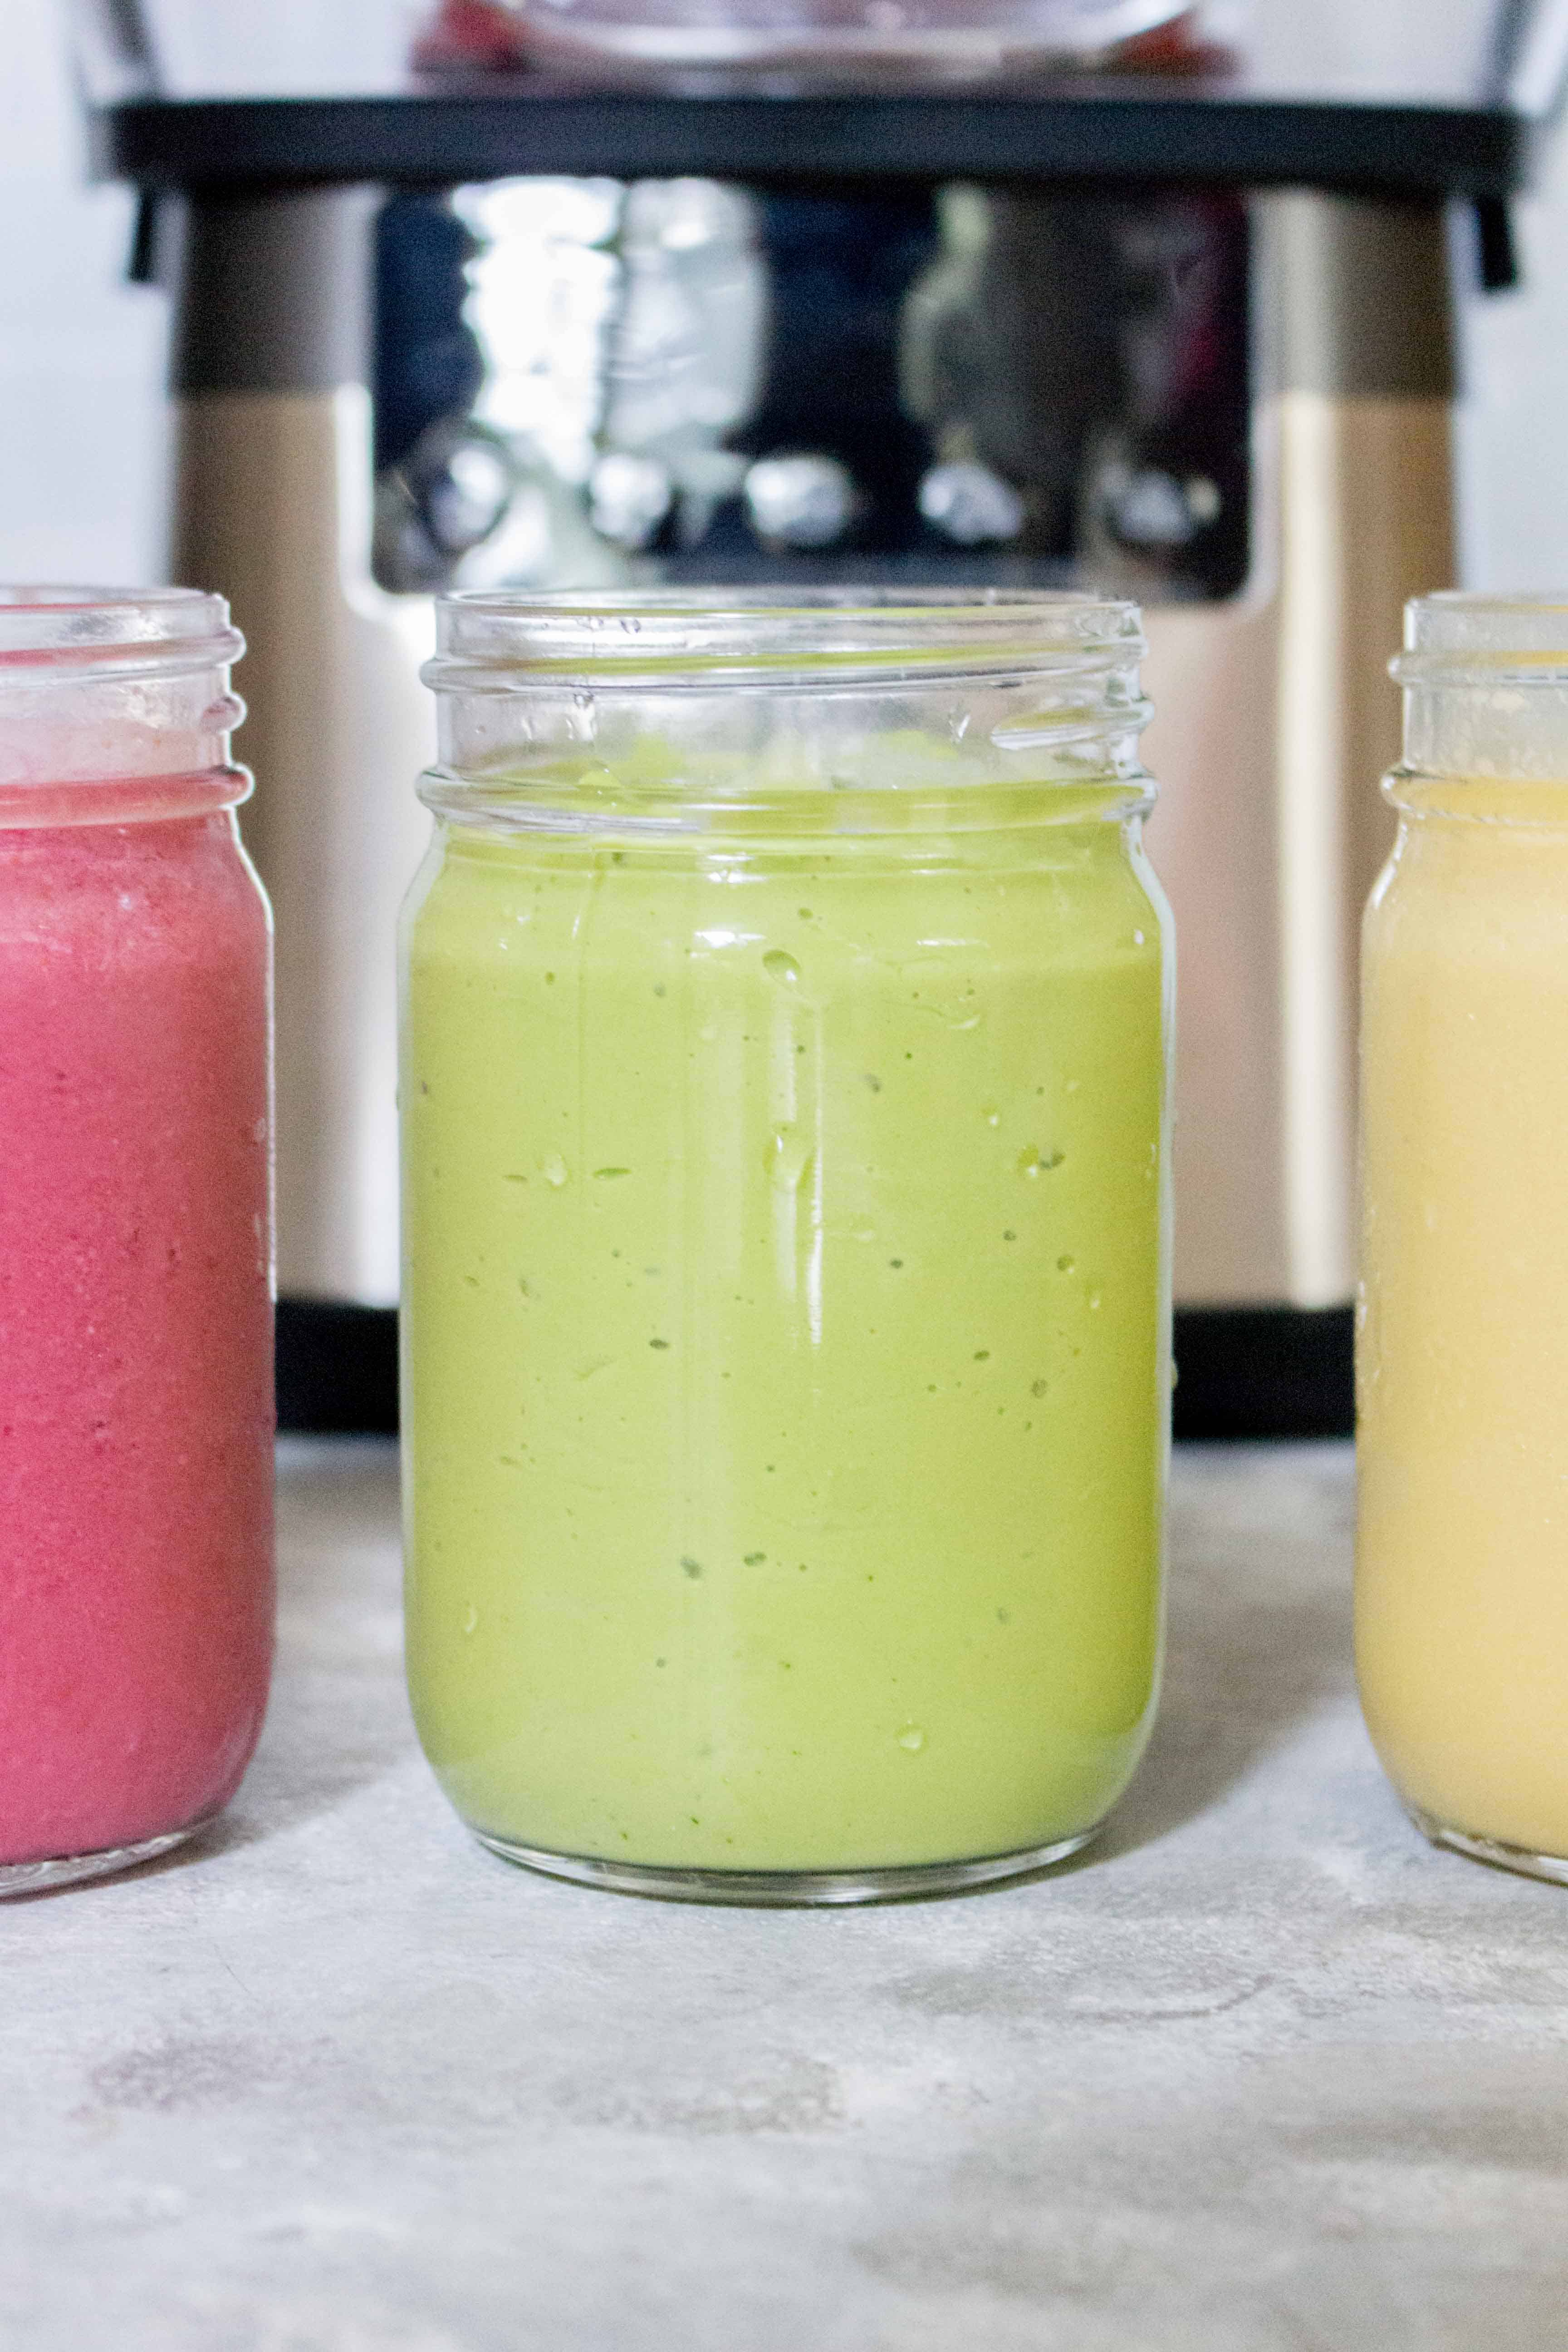 Want to incorporate smoothies into your day? Not sure where to start? Well, I've got you covered with this ultimate smoothie guide!